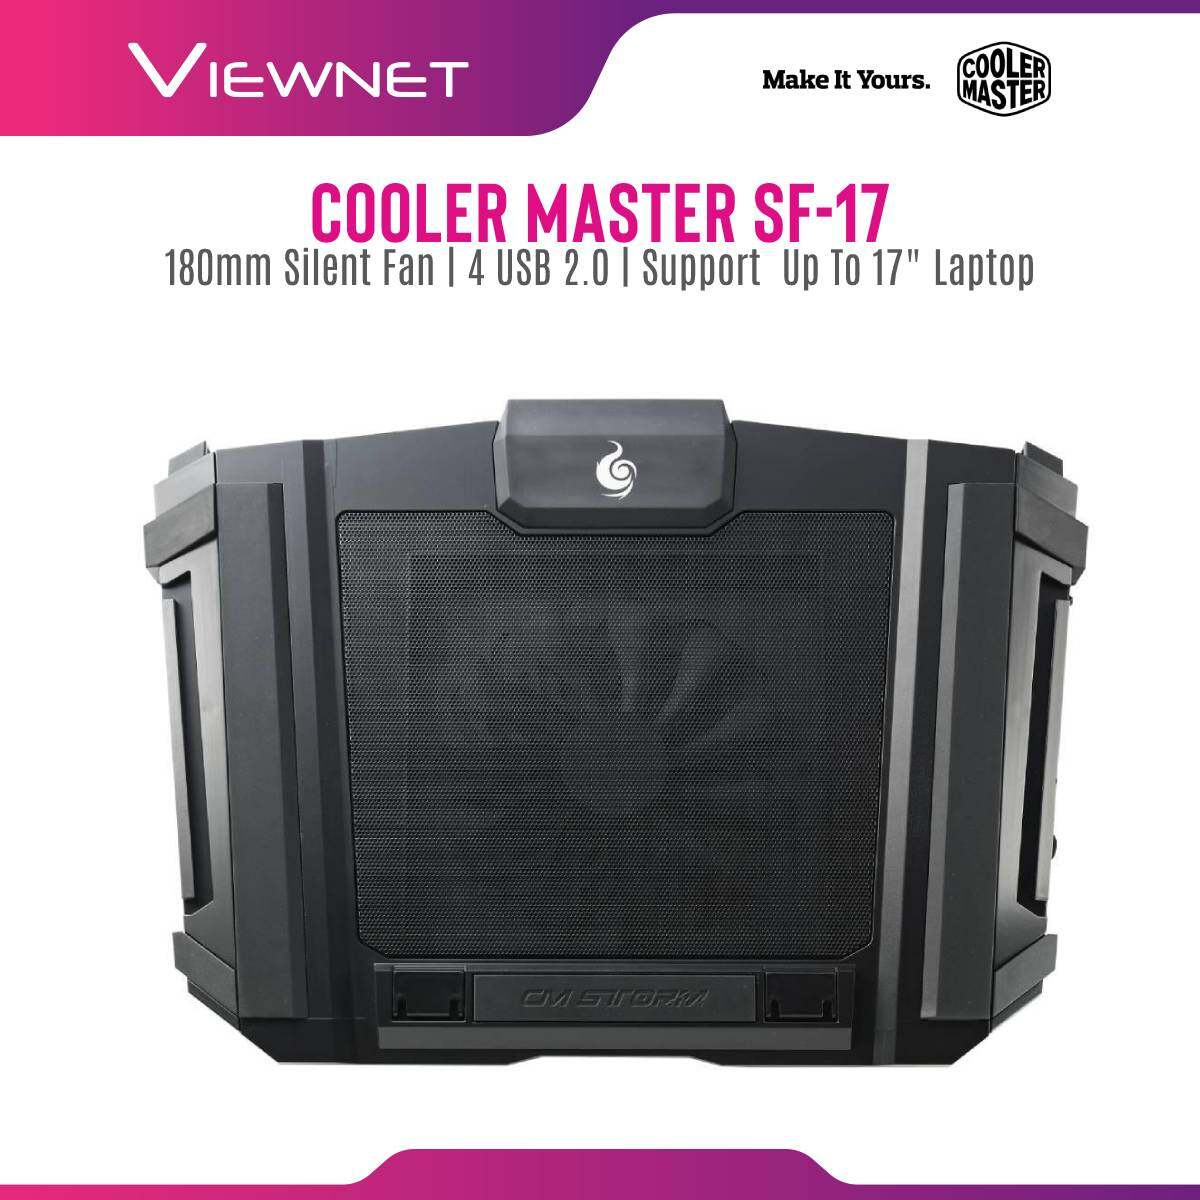 Cooler Master SF-17 180mm Silent Fan Height-Adjustable Ergonomic Mesh 4 USB 2.0 Gaming Notebook Cooler for up to 17